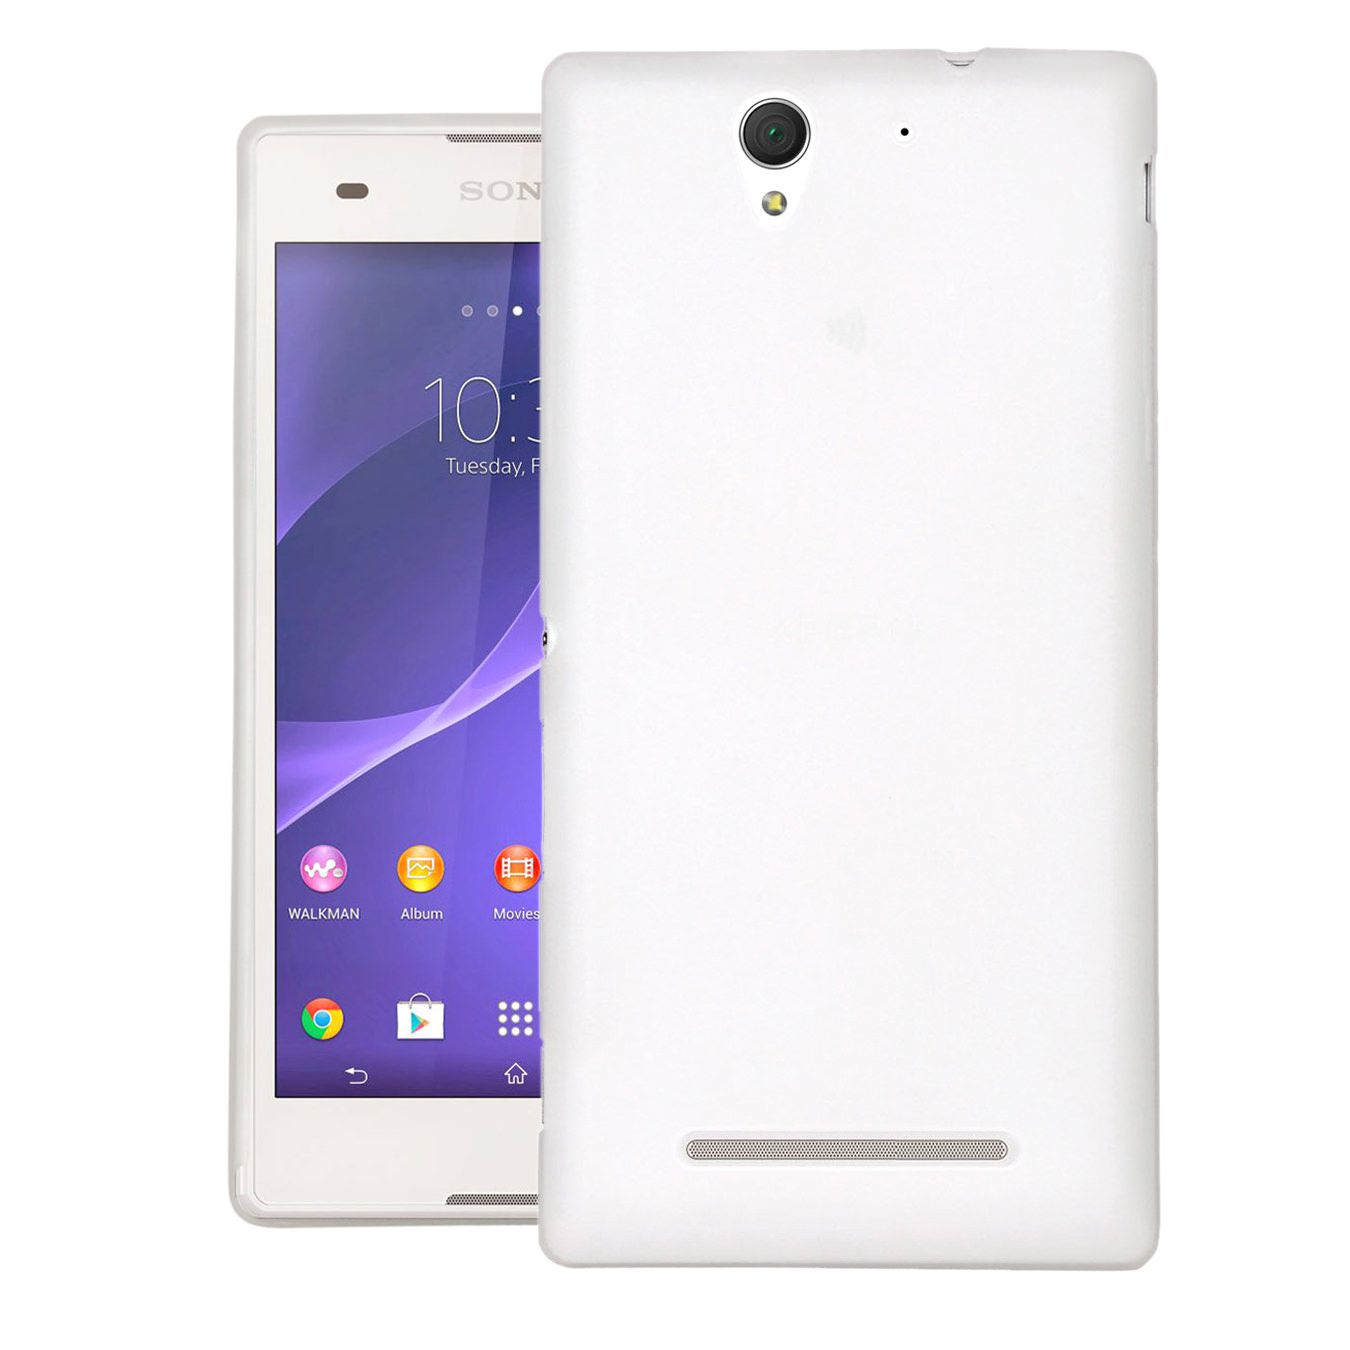 Sony Xperia C3 Case Cover : Cubix 0.3MM Ultra Thin Matte Case Back Cover for Sony Xperia C3 (white)